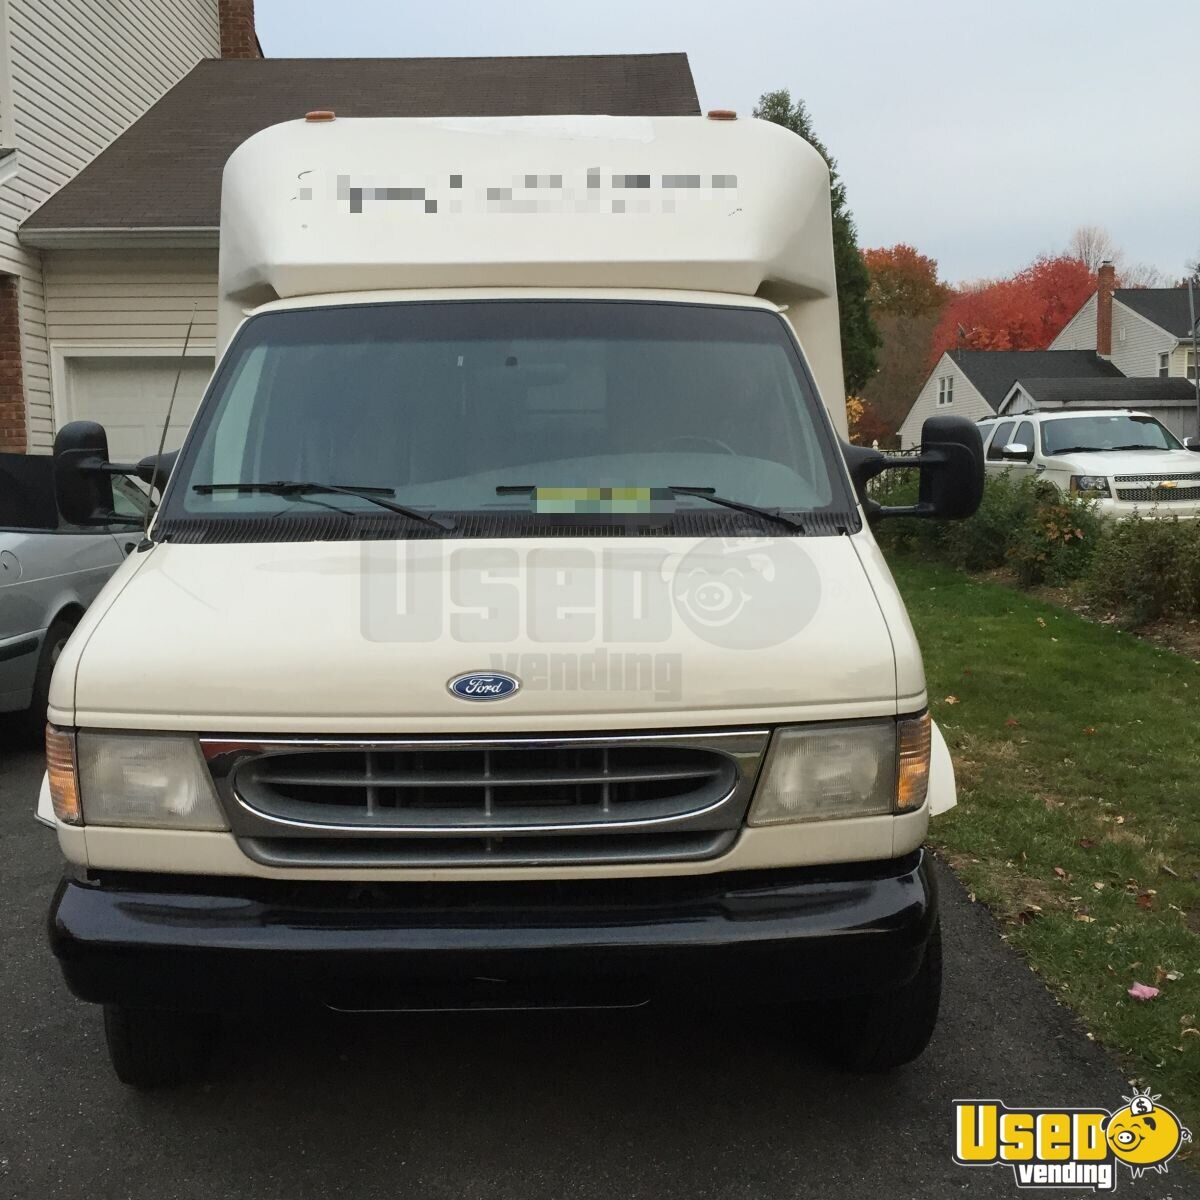 1998 Ford Econoline E350 Mobile Boutique Truck Spare Tire New Jersey Diesel Engine for Sale - 3